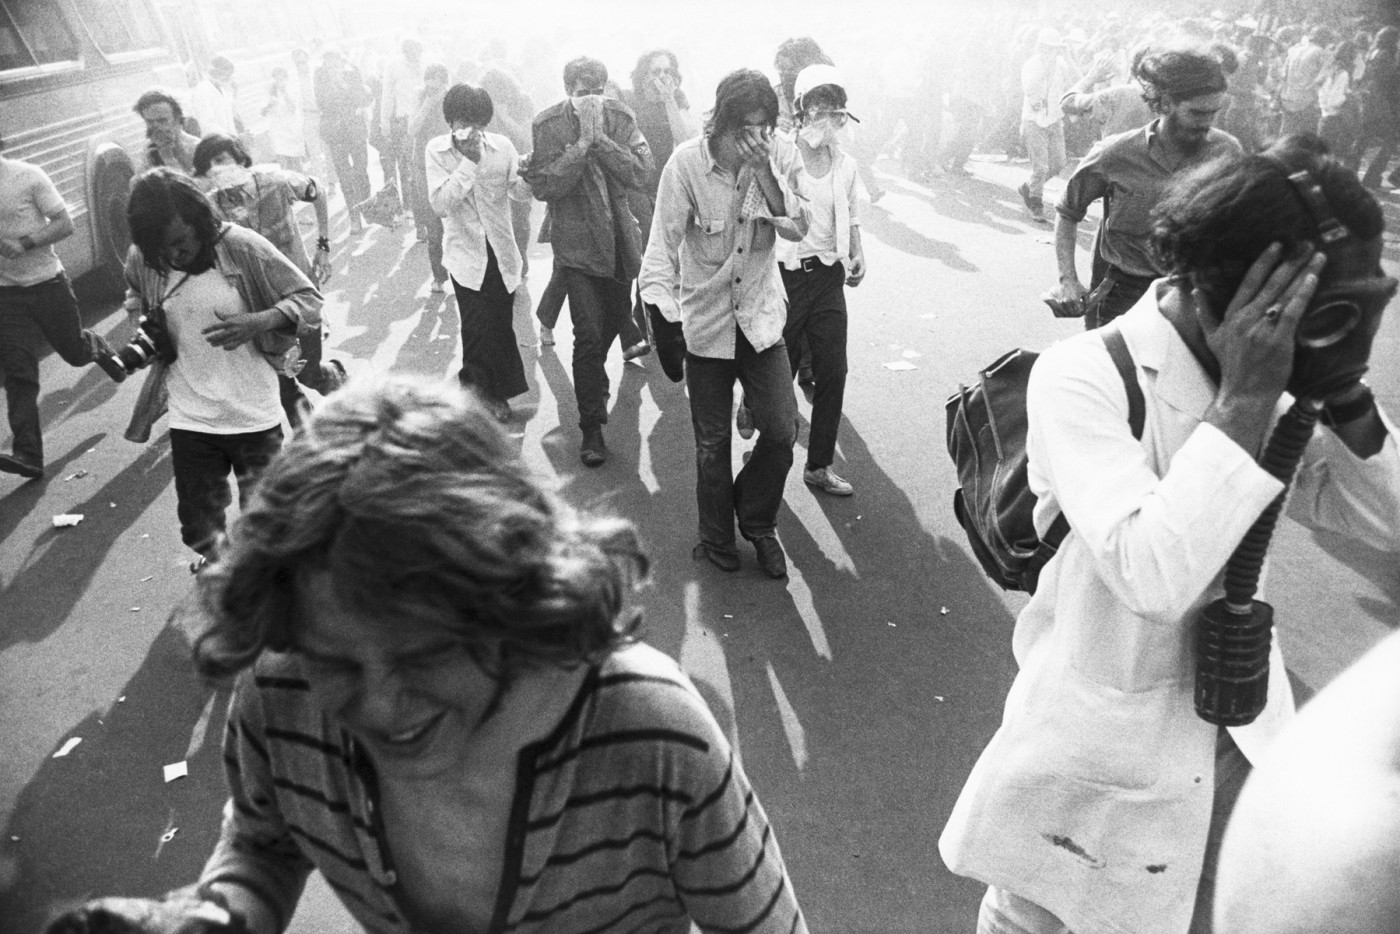 Garry Winogrand, </span><span><em>Kent State Demonstration, Washington, D.C.</em>, </span><span>1970. Gelatin silver print, 35.6 x 43.2 cm. Collection of the Art Gallery of Ontario. Purchase, with funds generously donated by Martha LA McCain, 2015. 2014/1341.